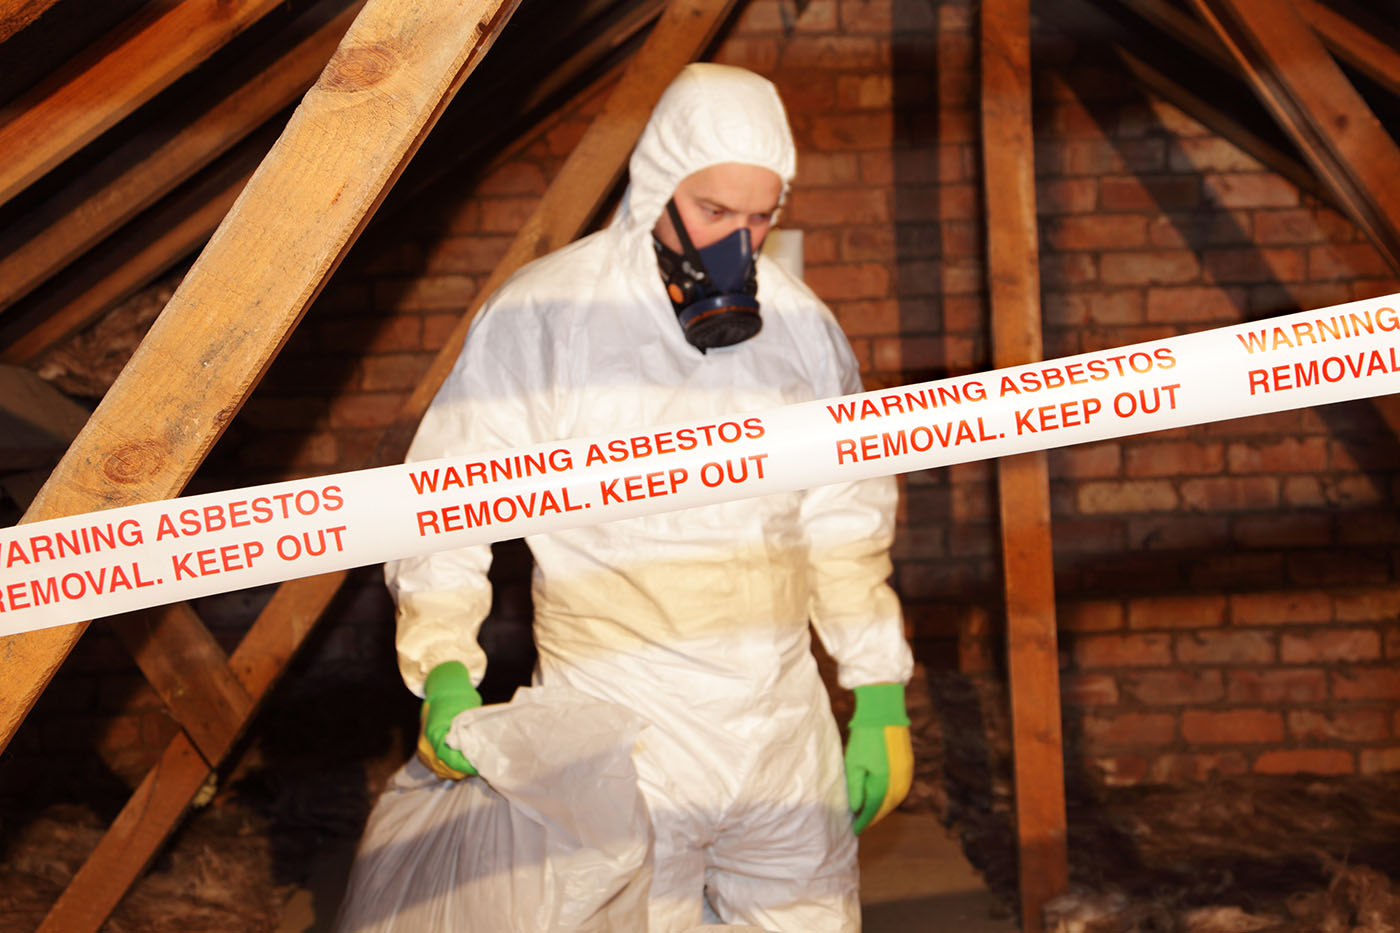 How to do the asbestos removal near me yourself?